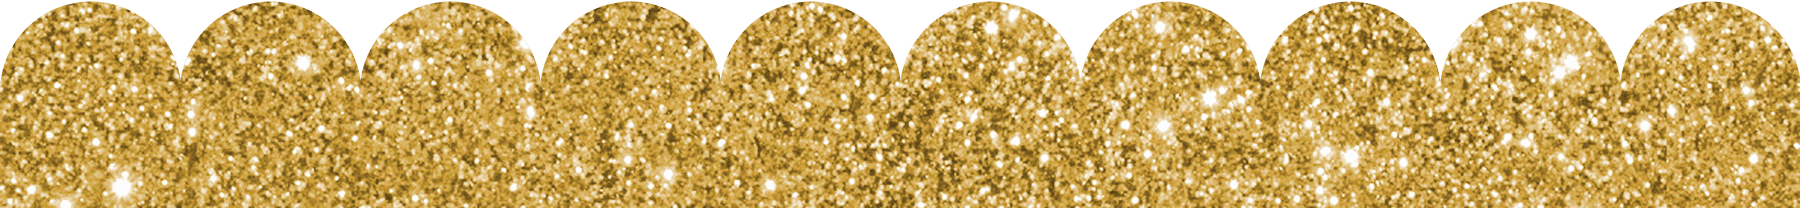 gold glitter, scalloped border templates any color download #25211